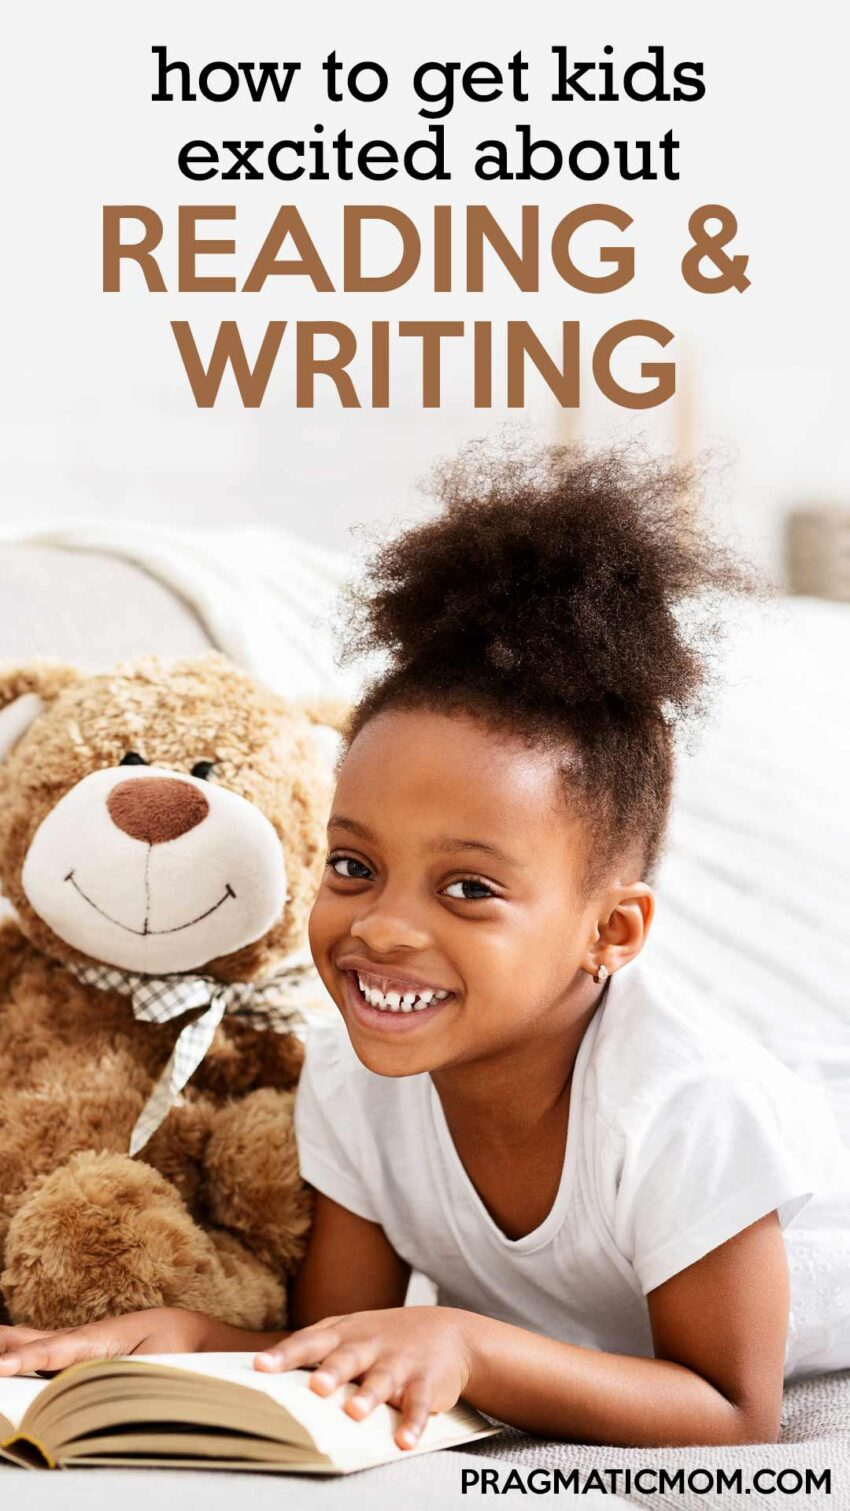 Getting Kids Excited about Reading and Writing